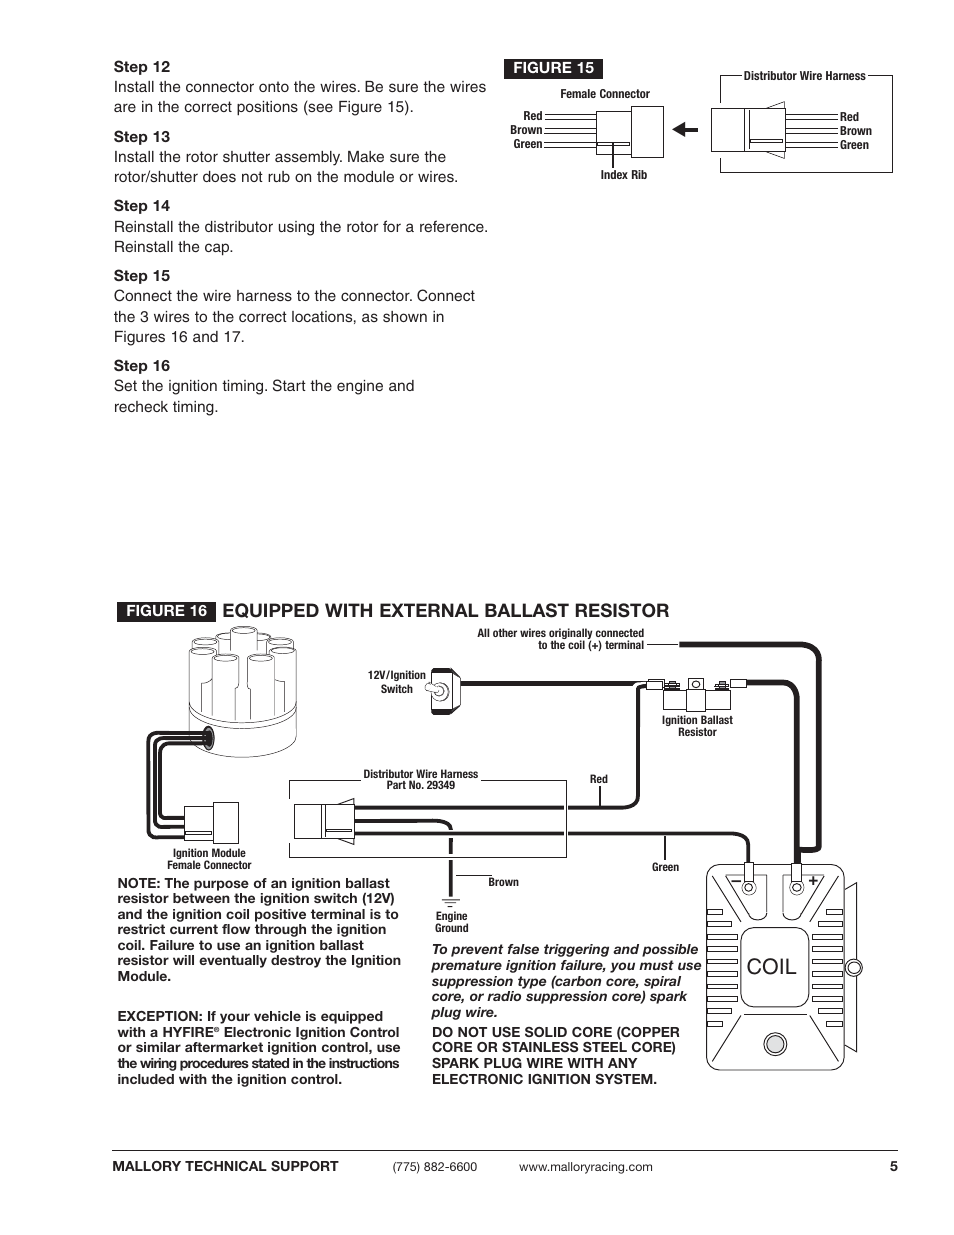 Mallory E Spark Wiring Diagram Electrical Diagrams Pro Comp Distributor Coil Equipped With External Ballast Resistor Ignition